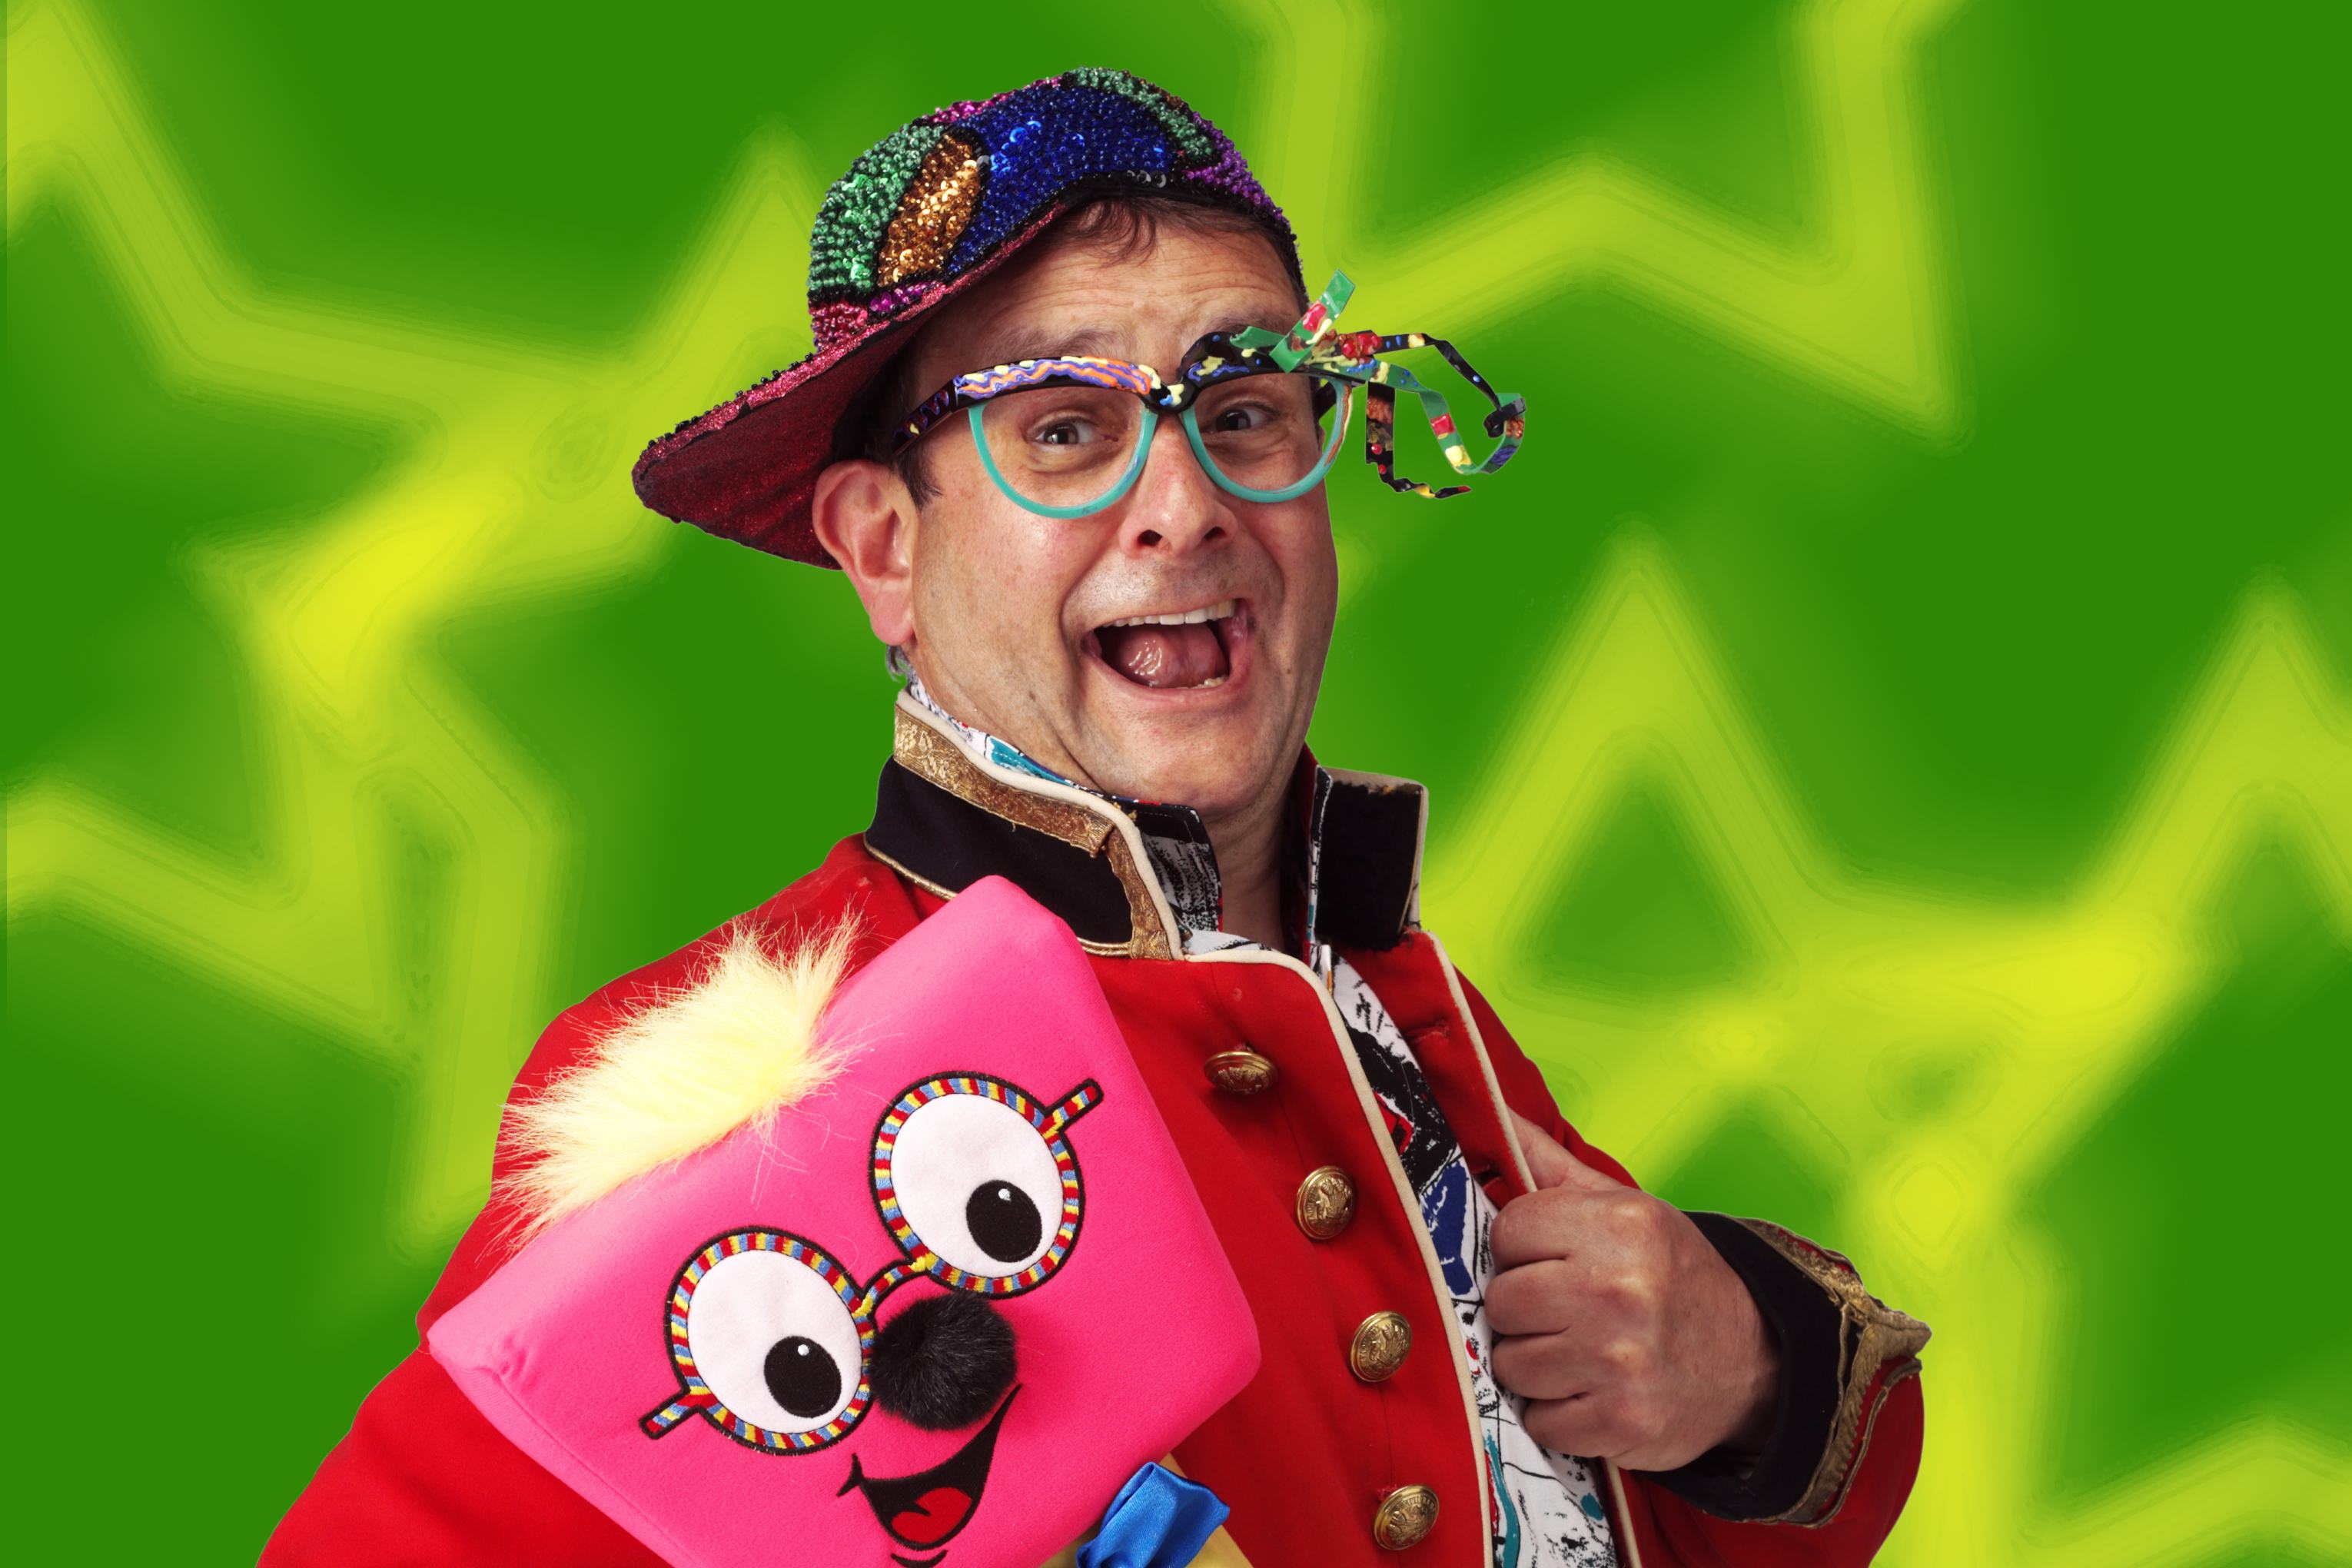 Timmy Mallett image